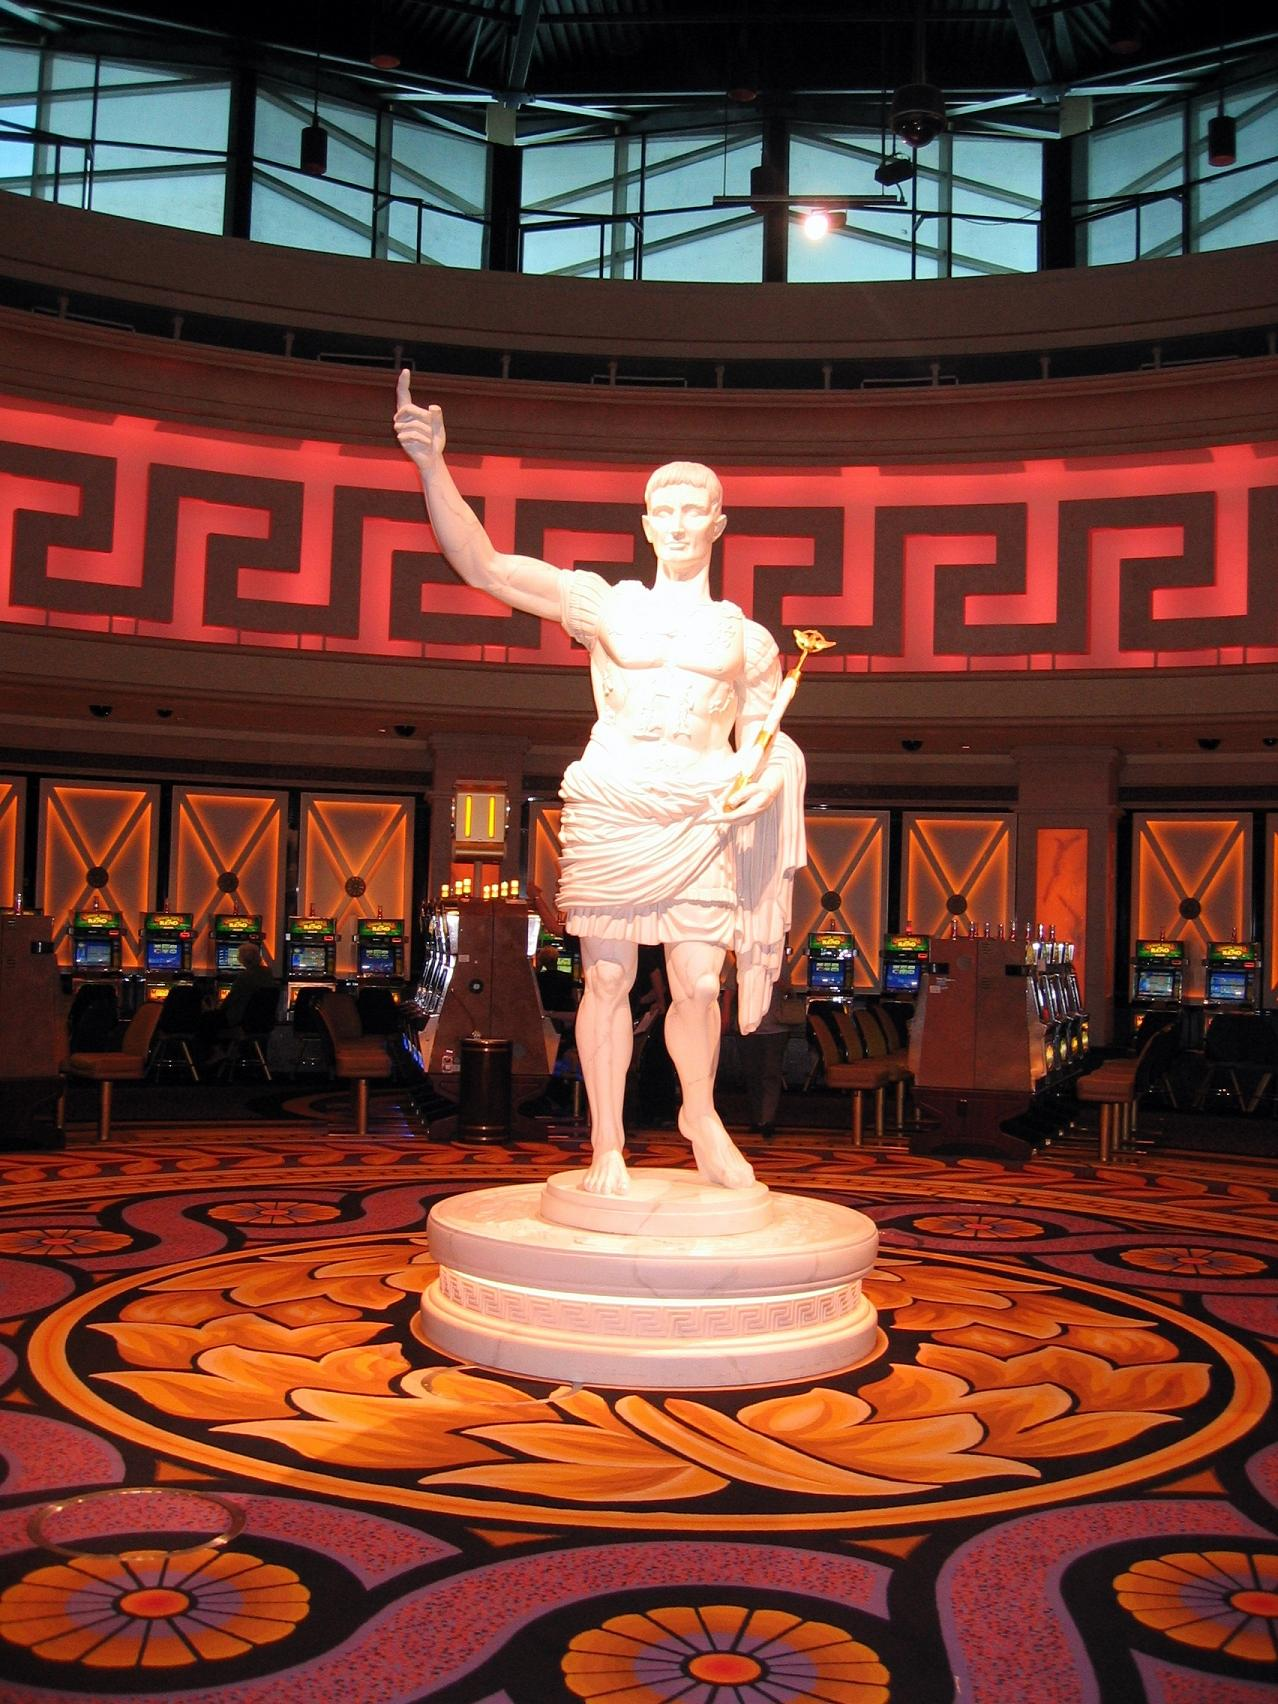 Relax gaming caesars palace wikipedia - 665115